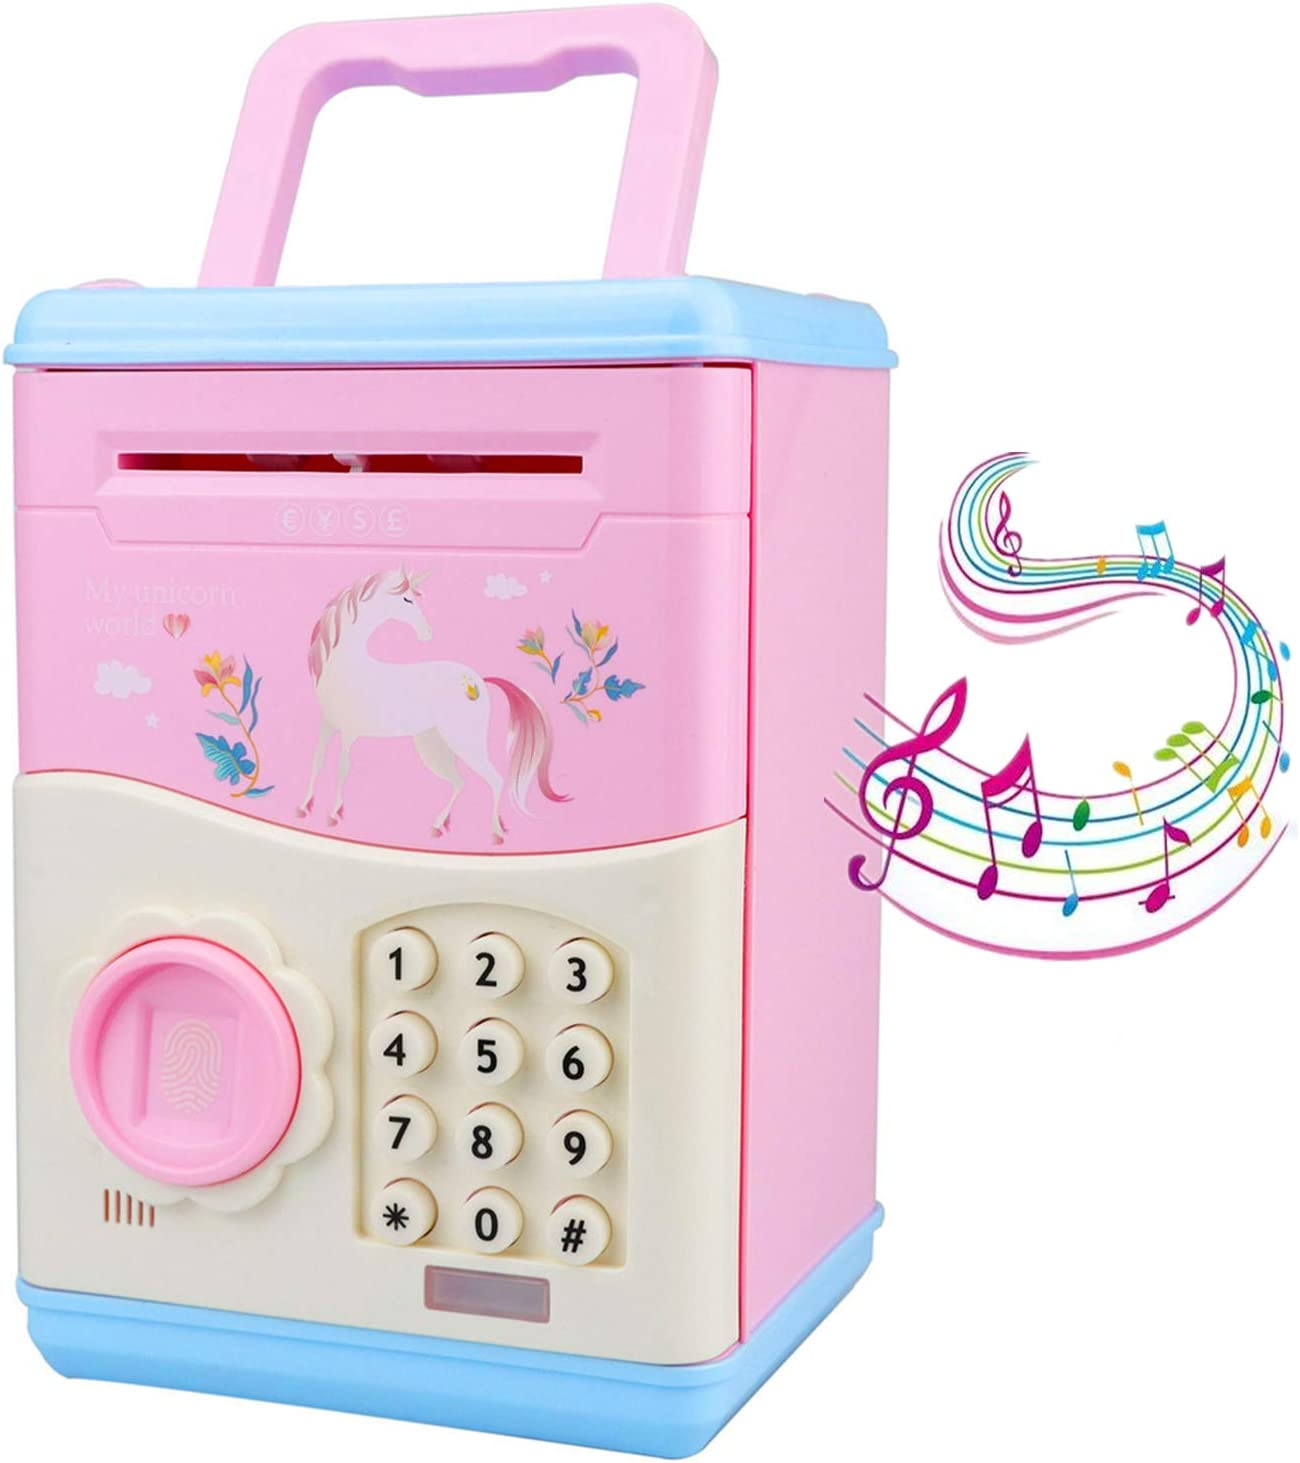 Unicorn Savings Piggy Bank for Girls Kids, Mini ATM Electronic Piggy Banks Money Banks Coin Banks with Password Multi-Button Electronic Number Bank, Great Gift Toys for 7-12 Year Old Girls, Pink